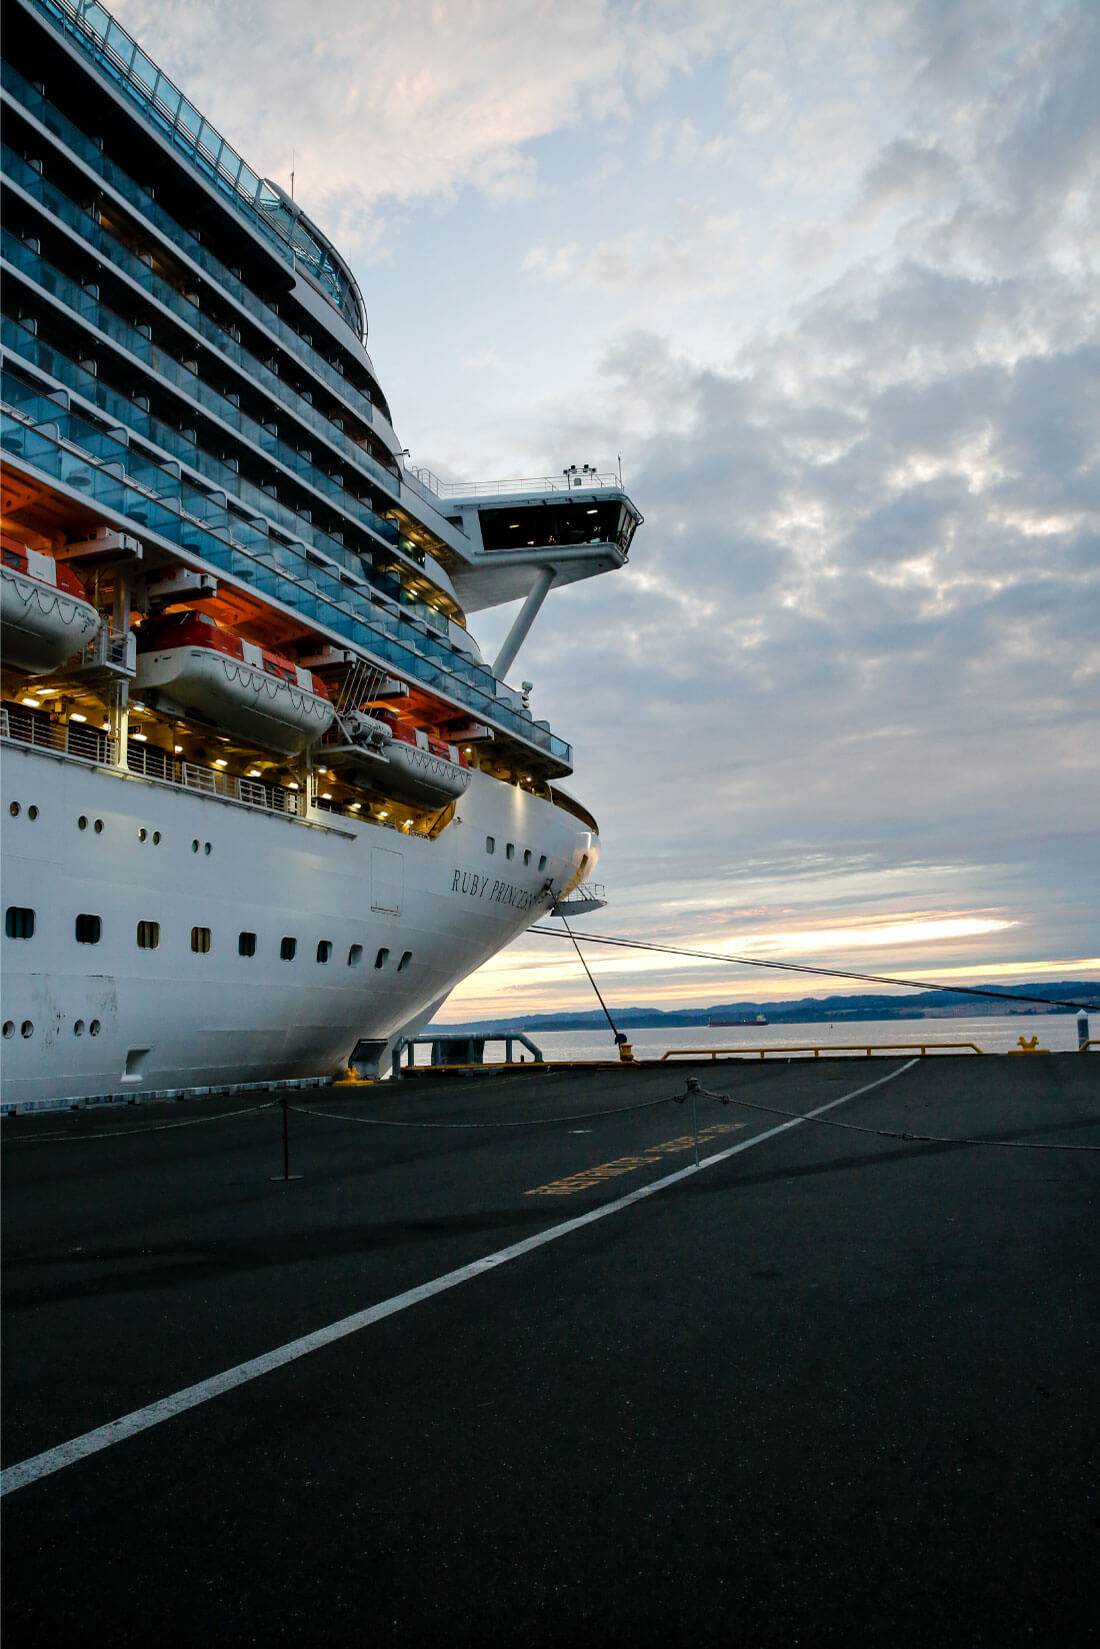 What's It Really Like Going on an Alaskan Cruise? Arriving in the Ruby Princess.